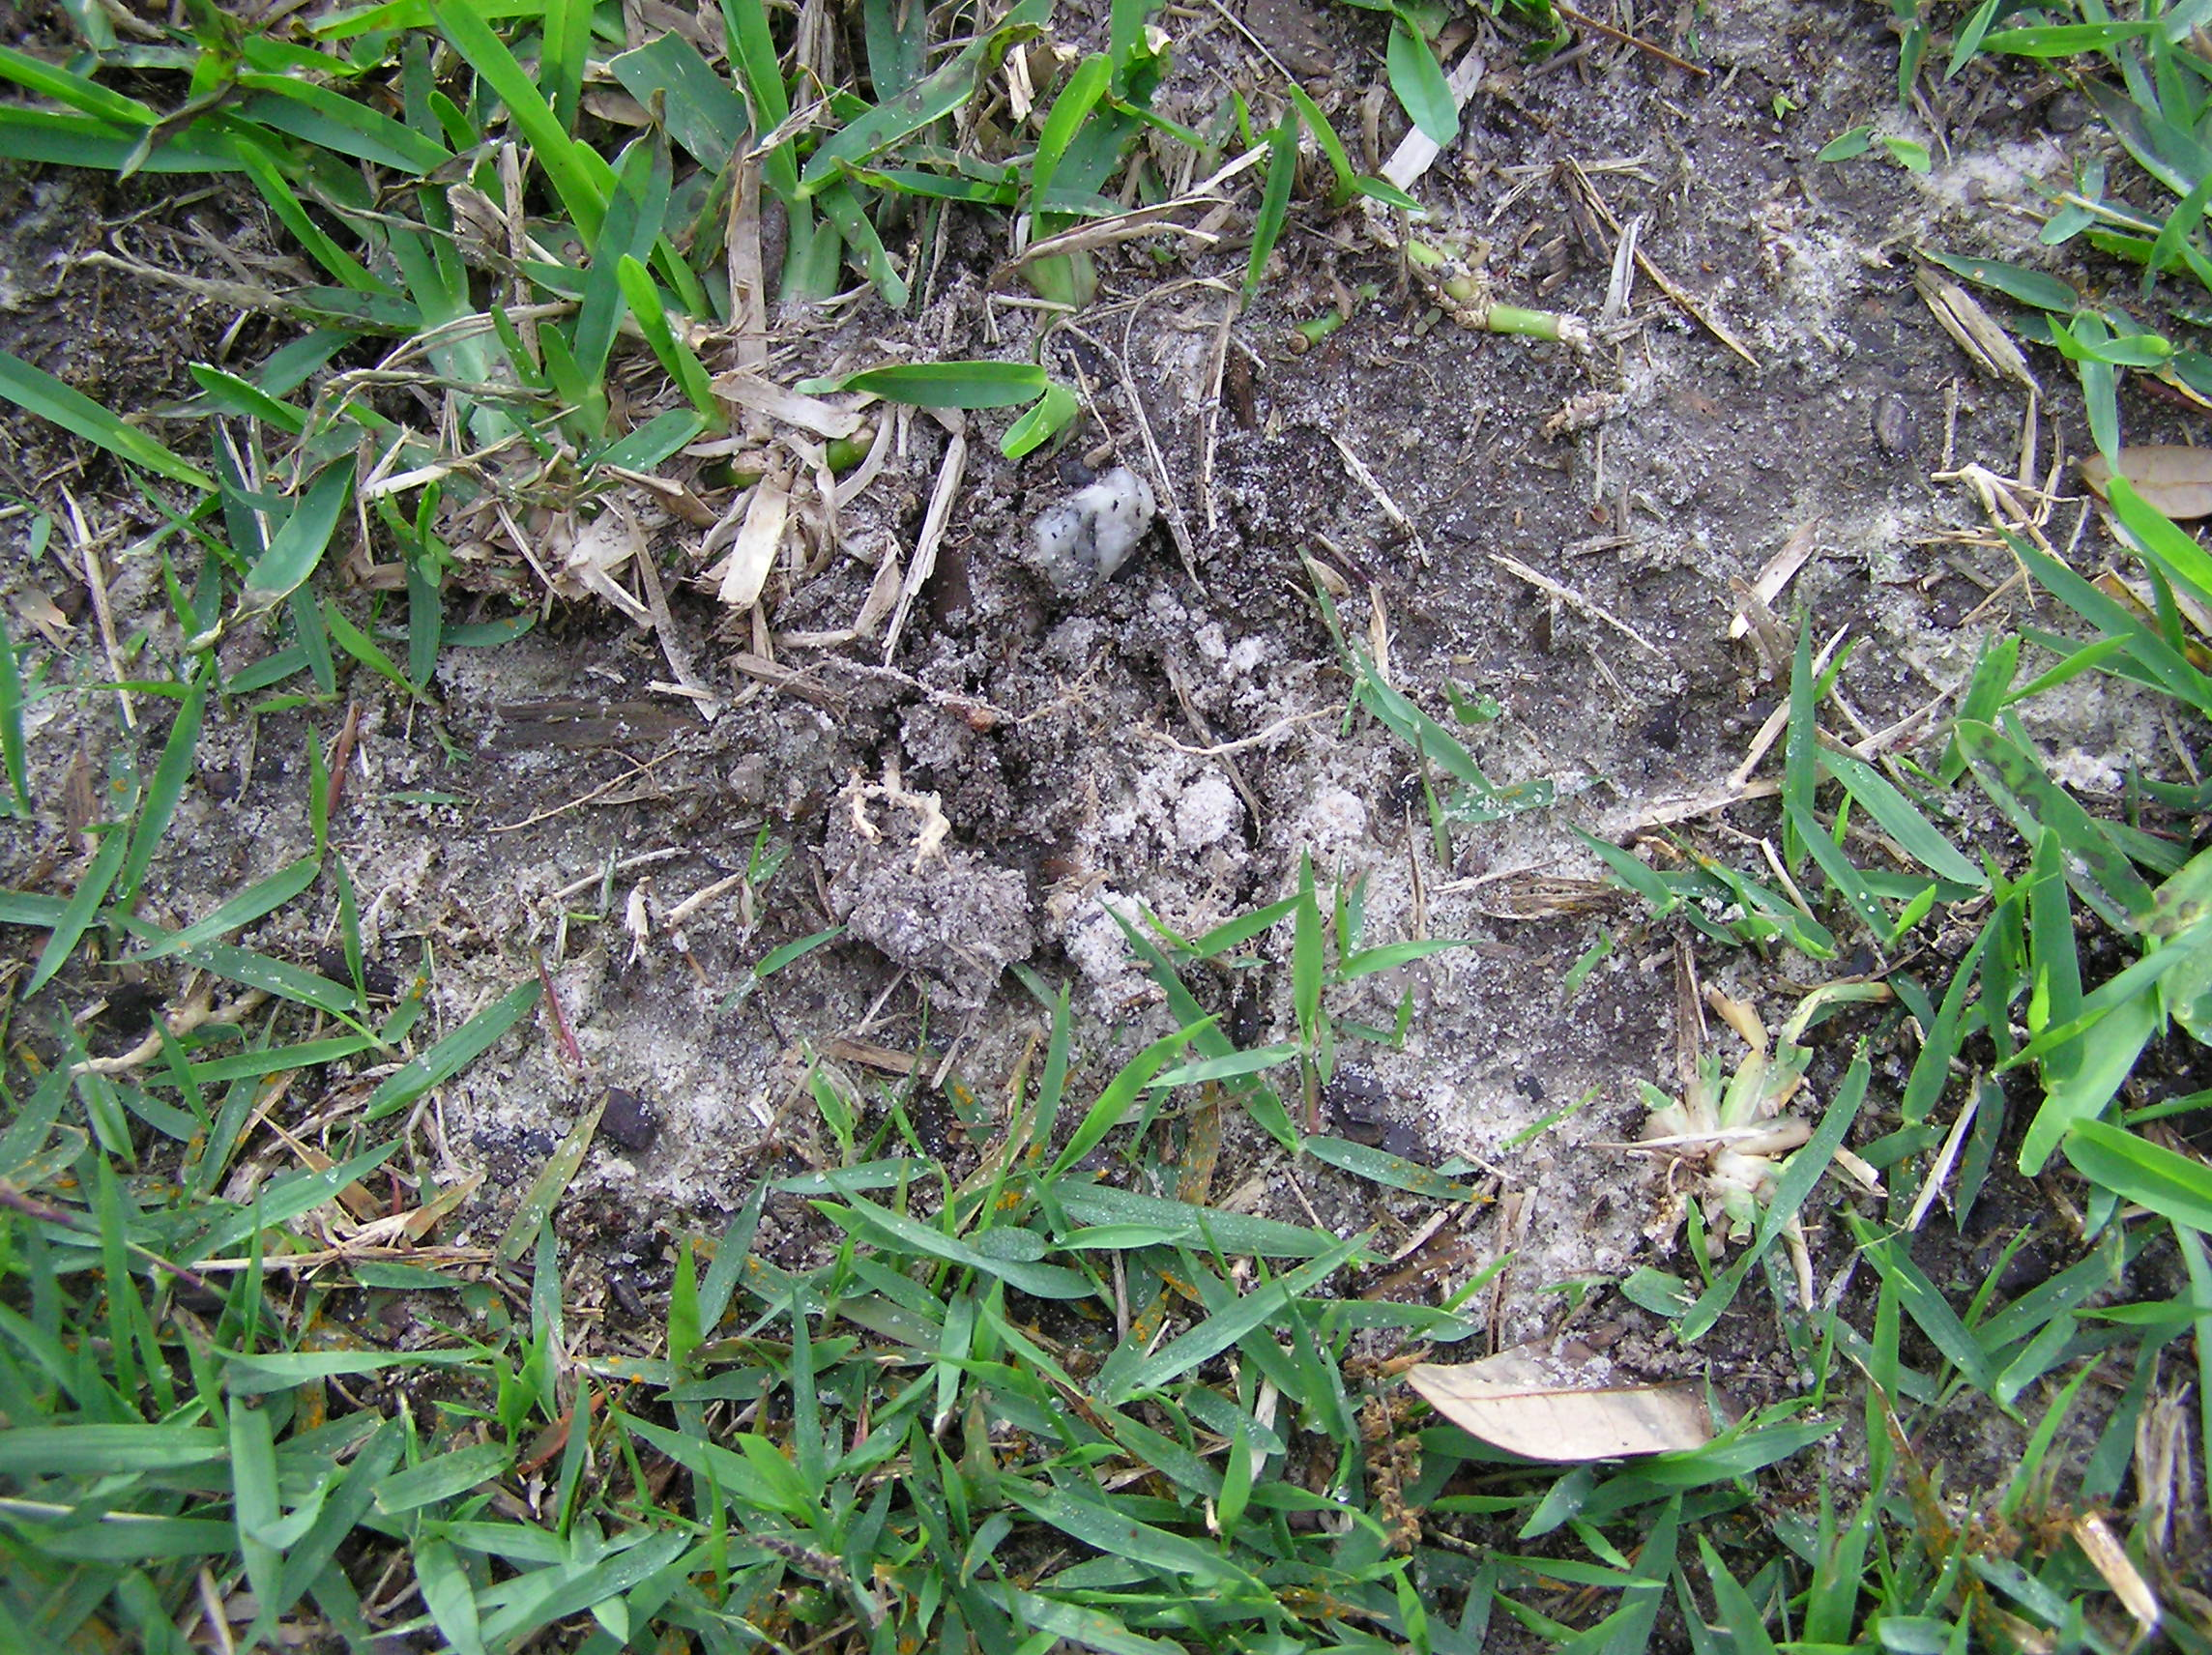 mole cricket lawn damage